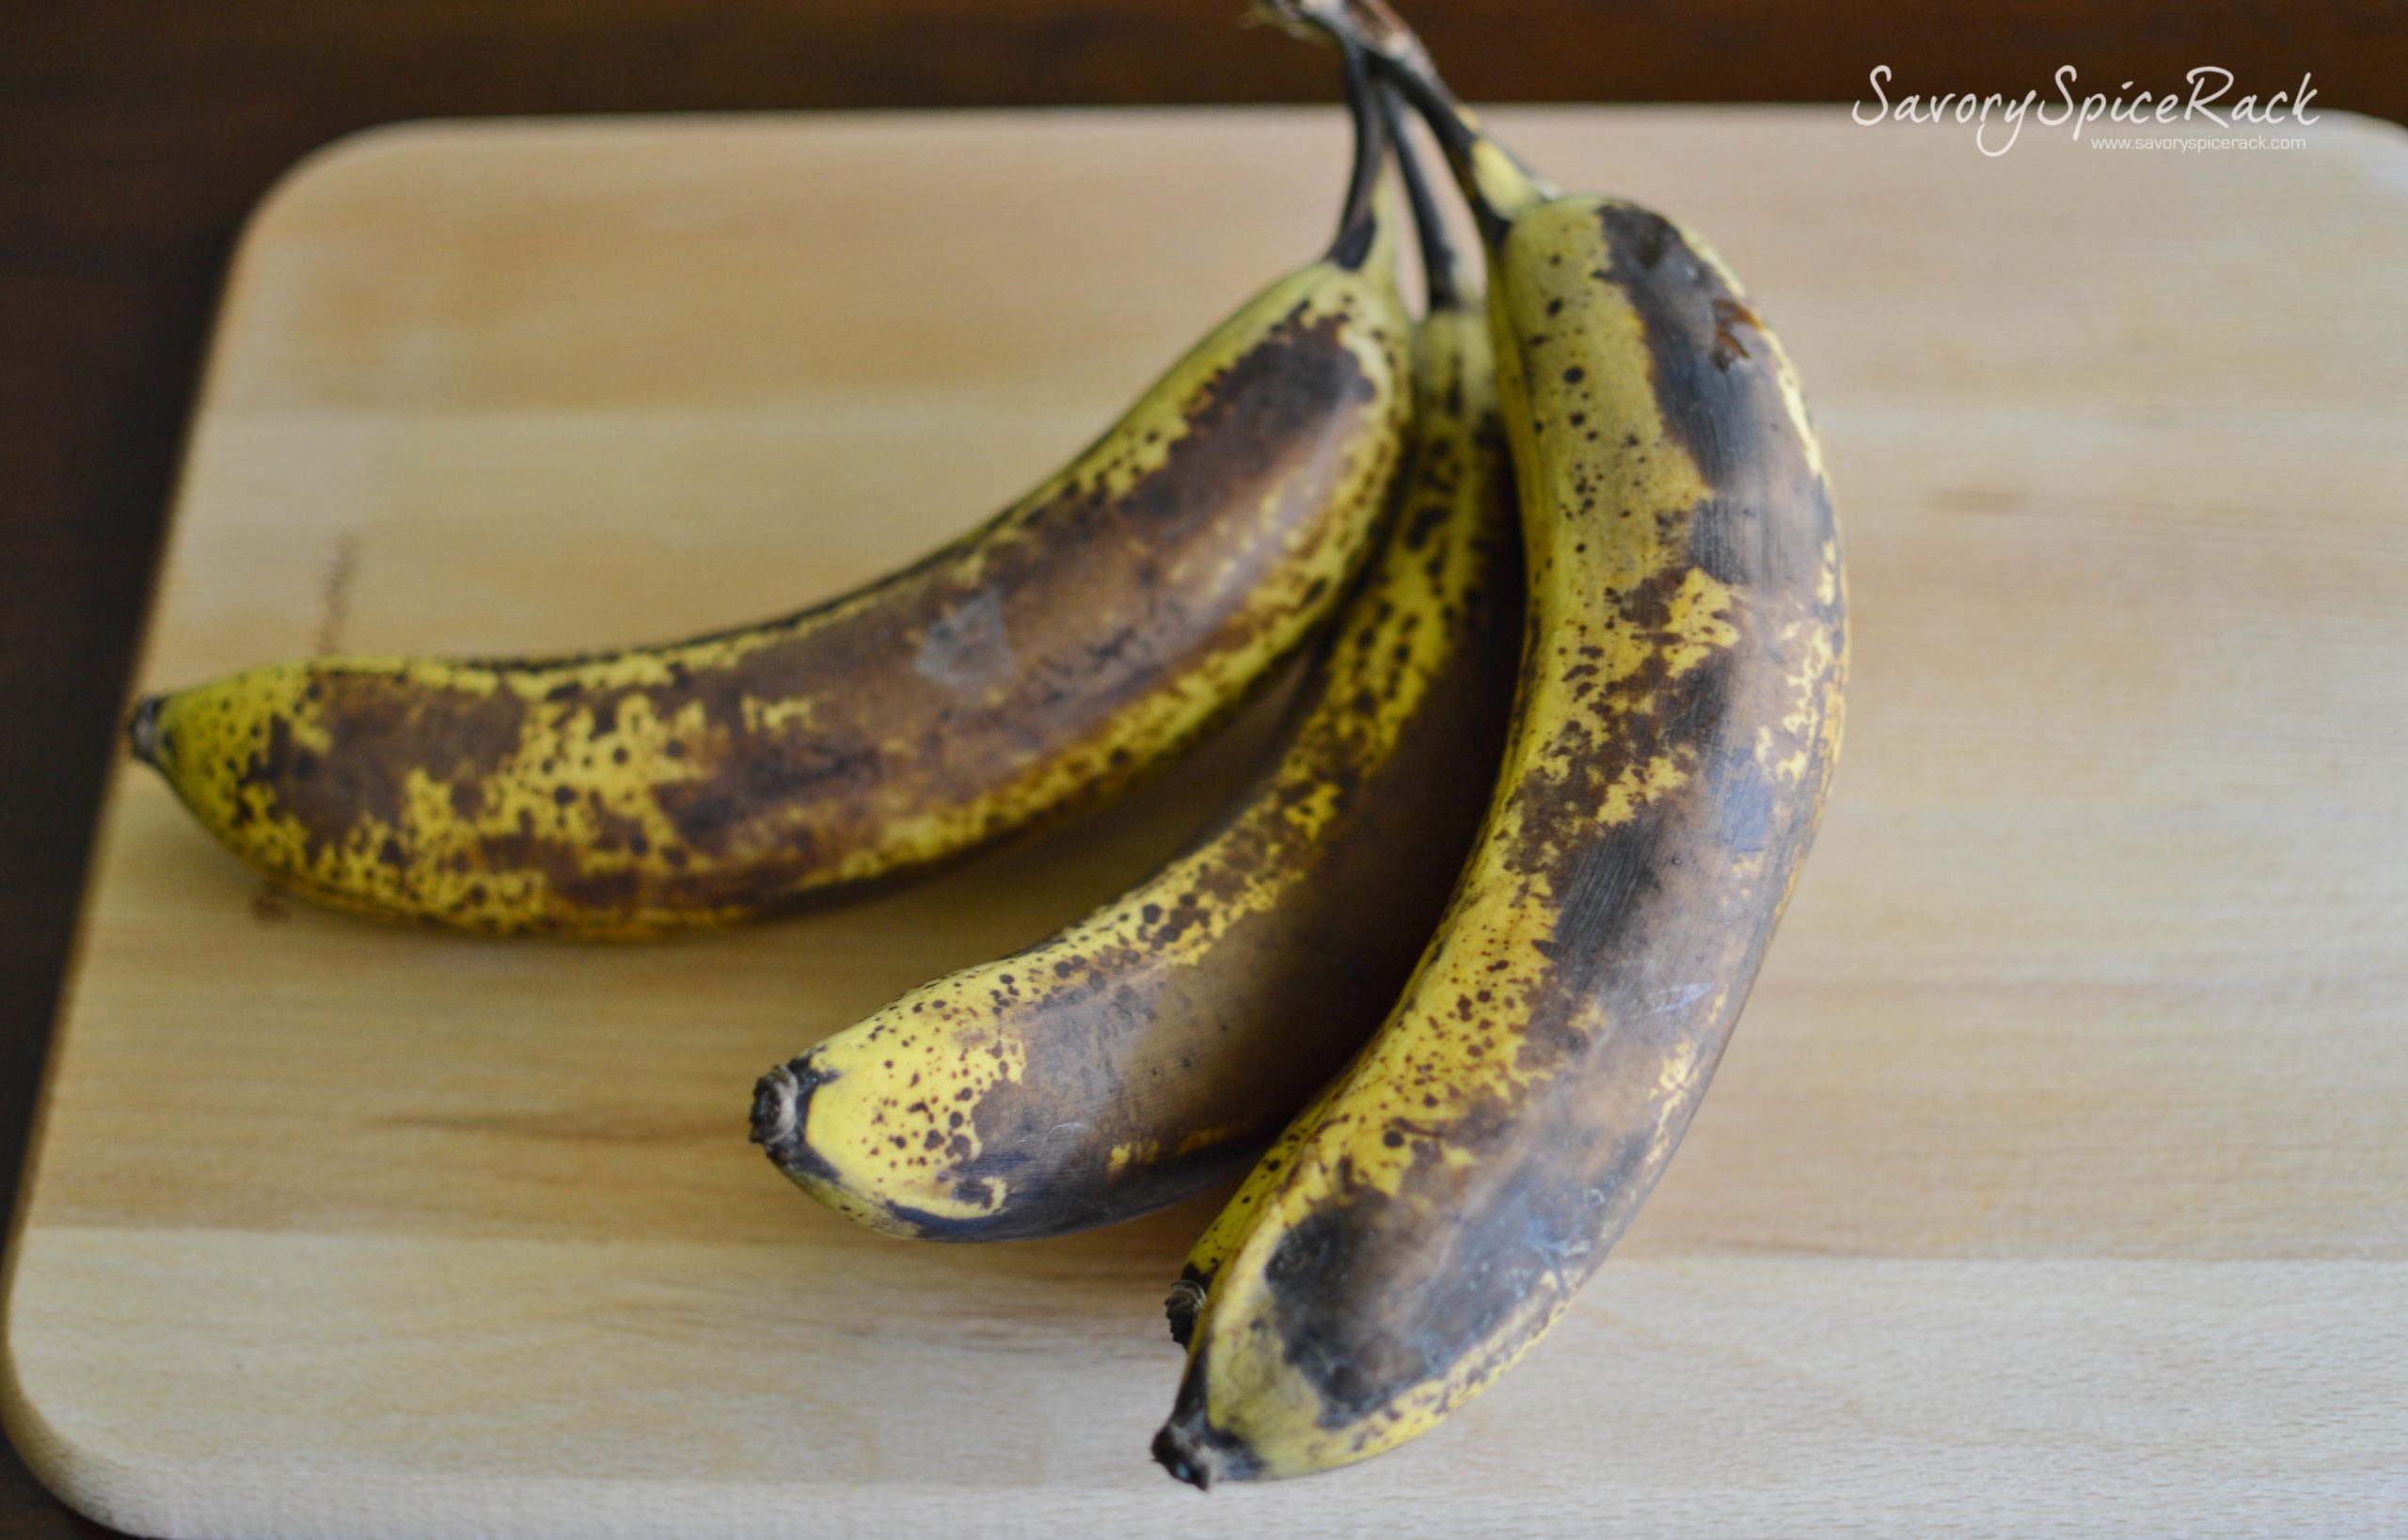 Three perfectly overripe bananas on a wooden board